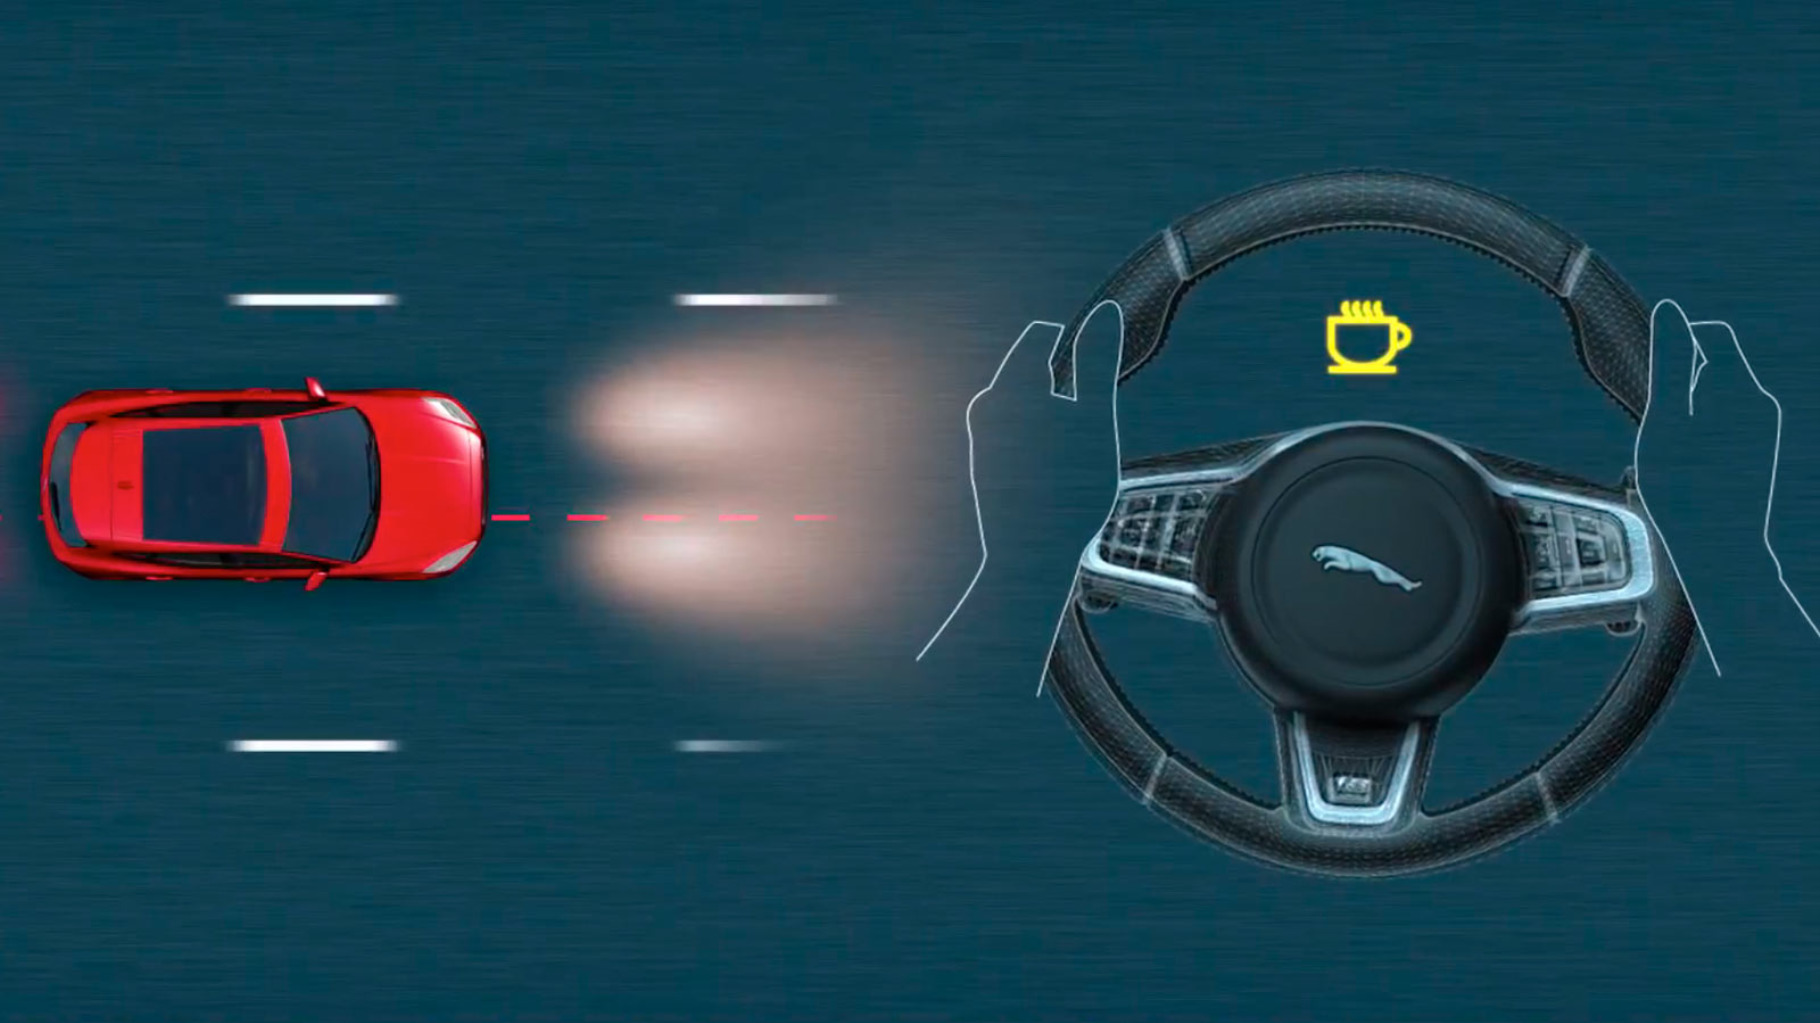 A diagram of Jaguar E-Pace Driver Condition Monitor detecting the driver is drowsy and alerting them to take a break.